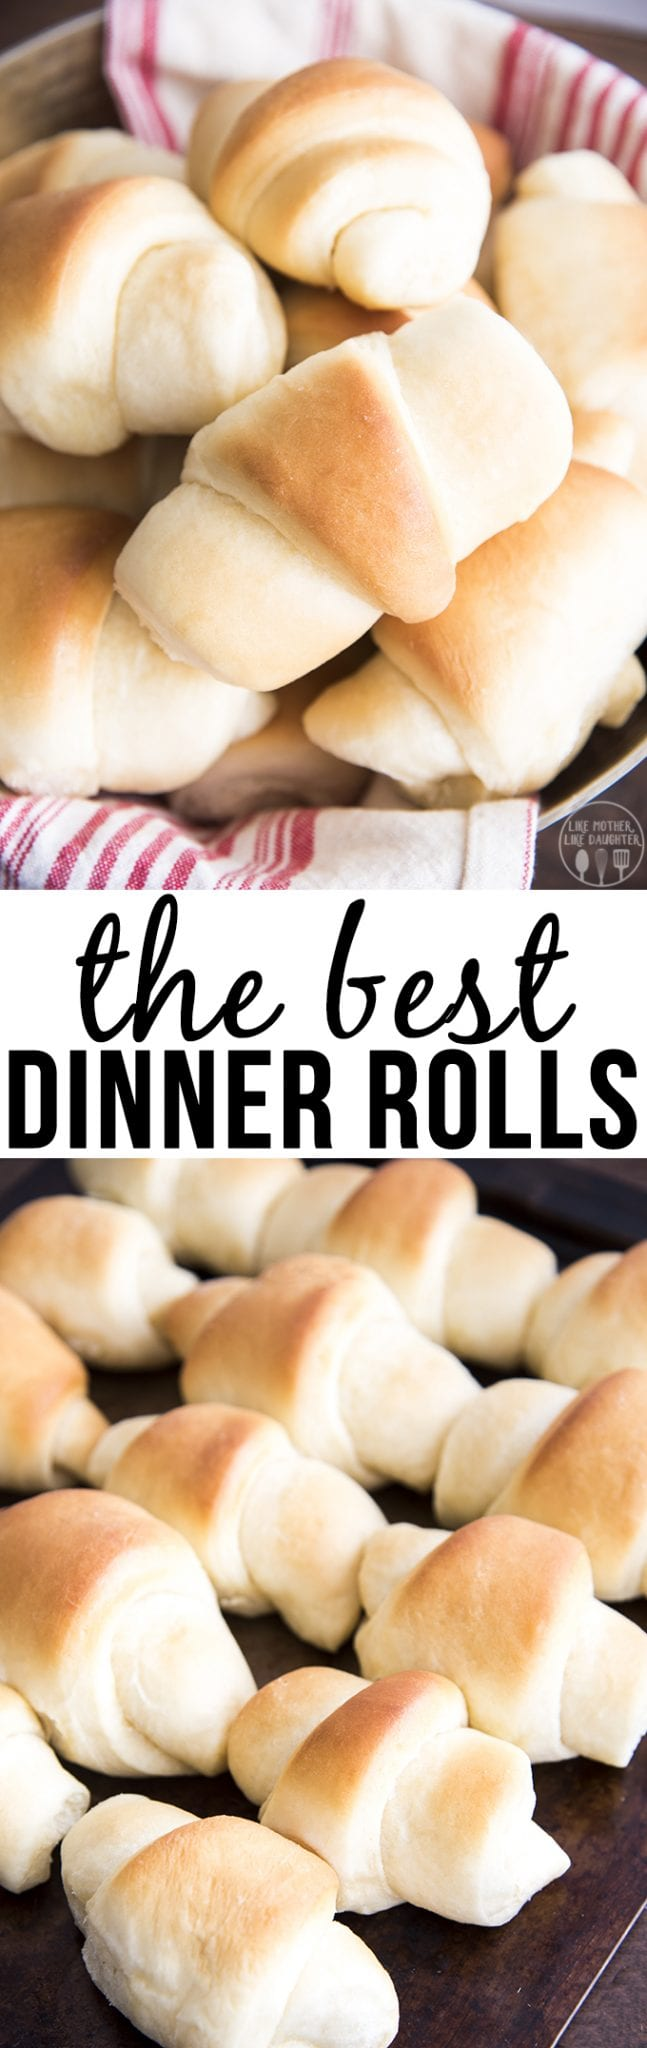 Homemade dinner rolls are the best ever! They are soft and fluffy, and your whole family will love them!